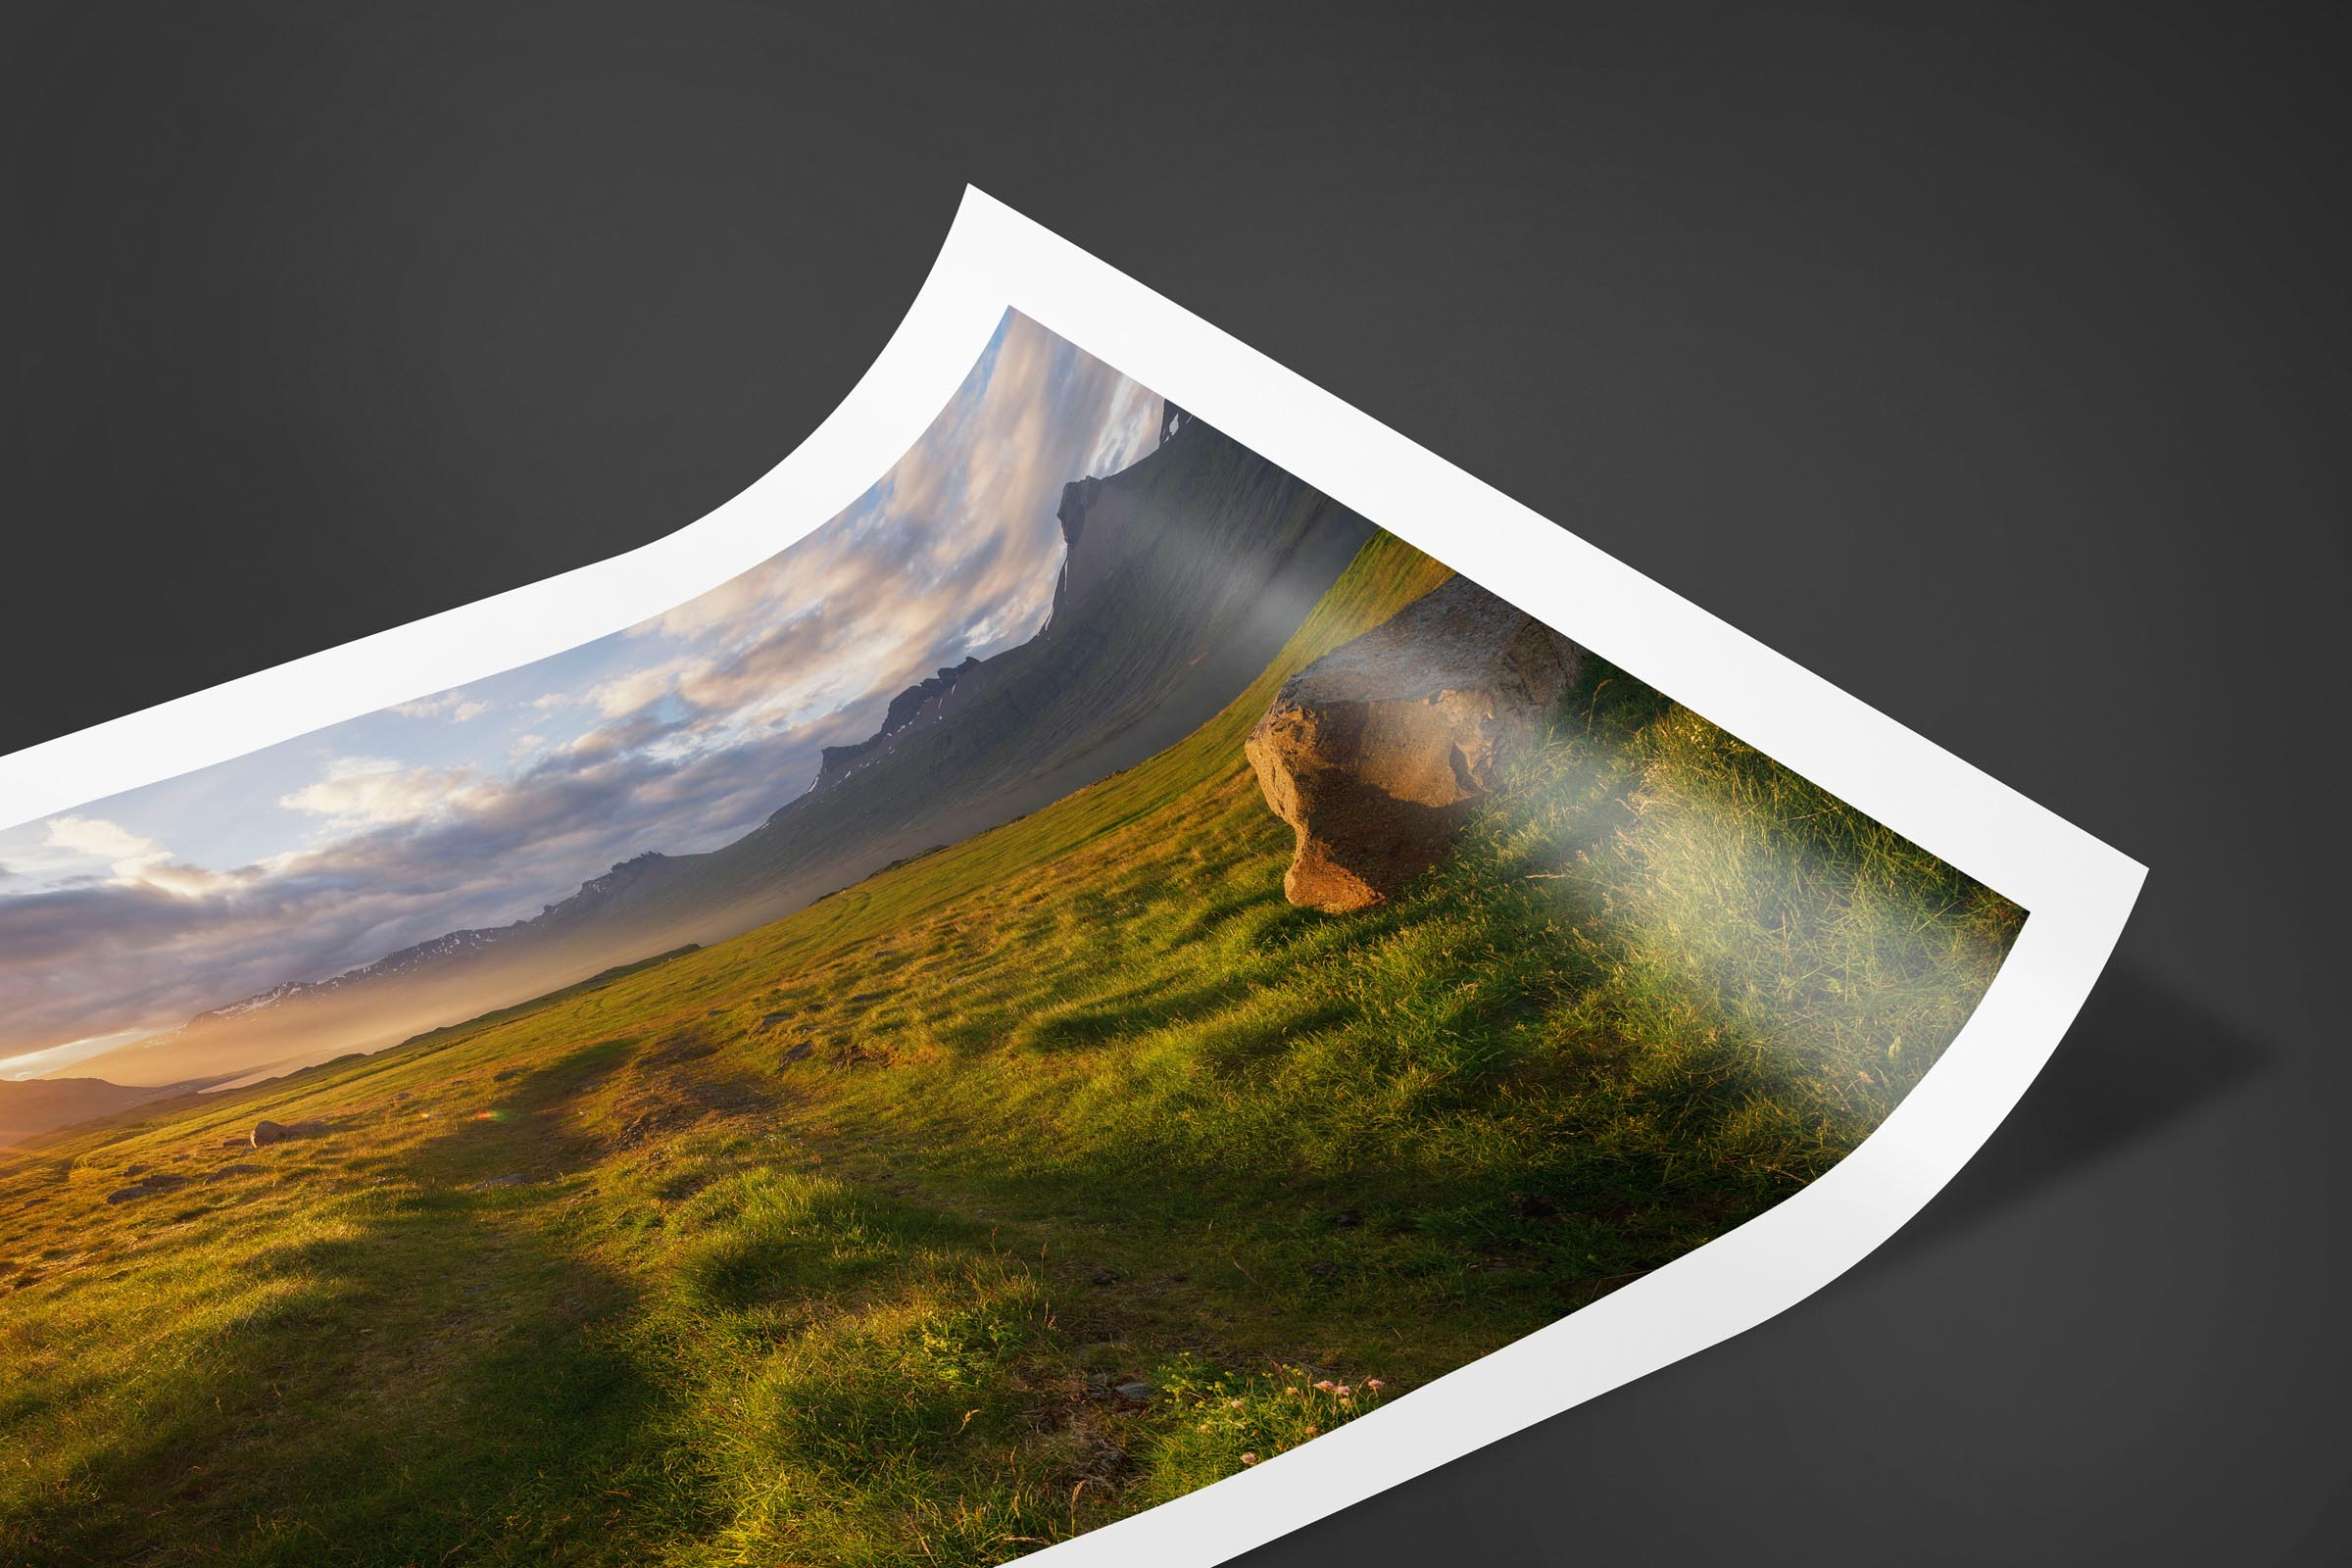 Fine art limited edition print of Sunburst Meadow in Djupivogur, Iceland by Brent Goldman Photography